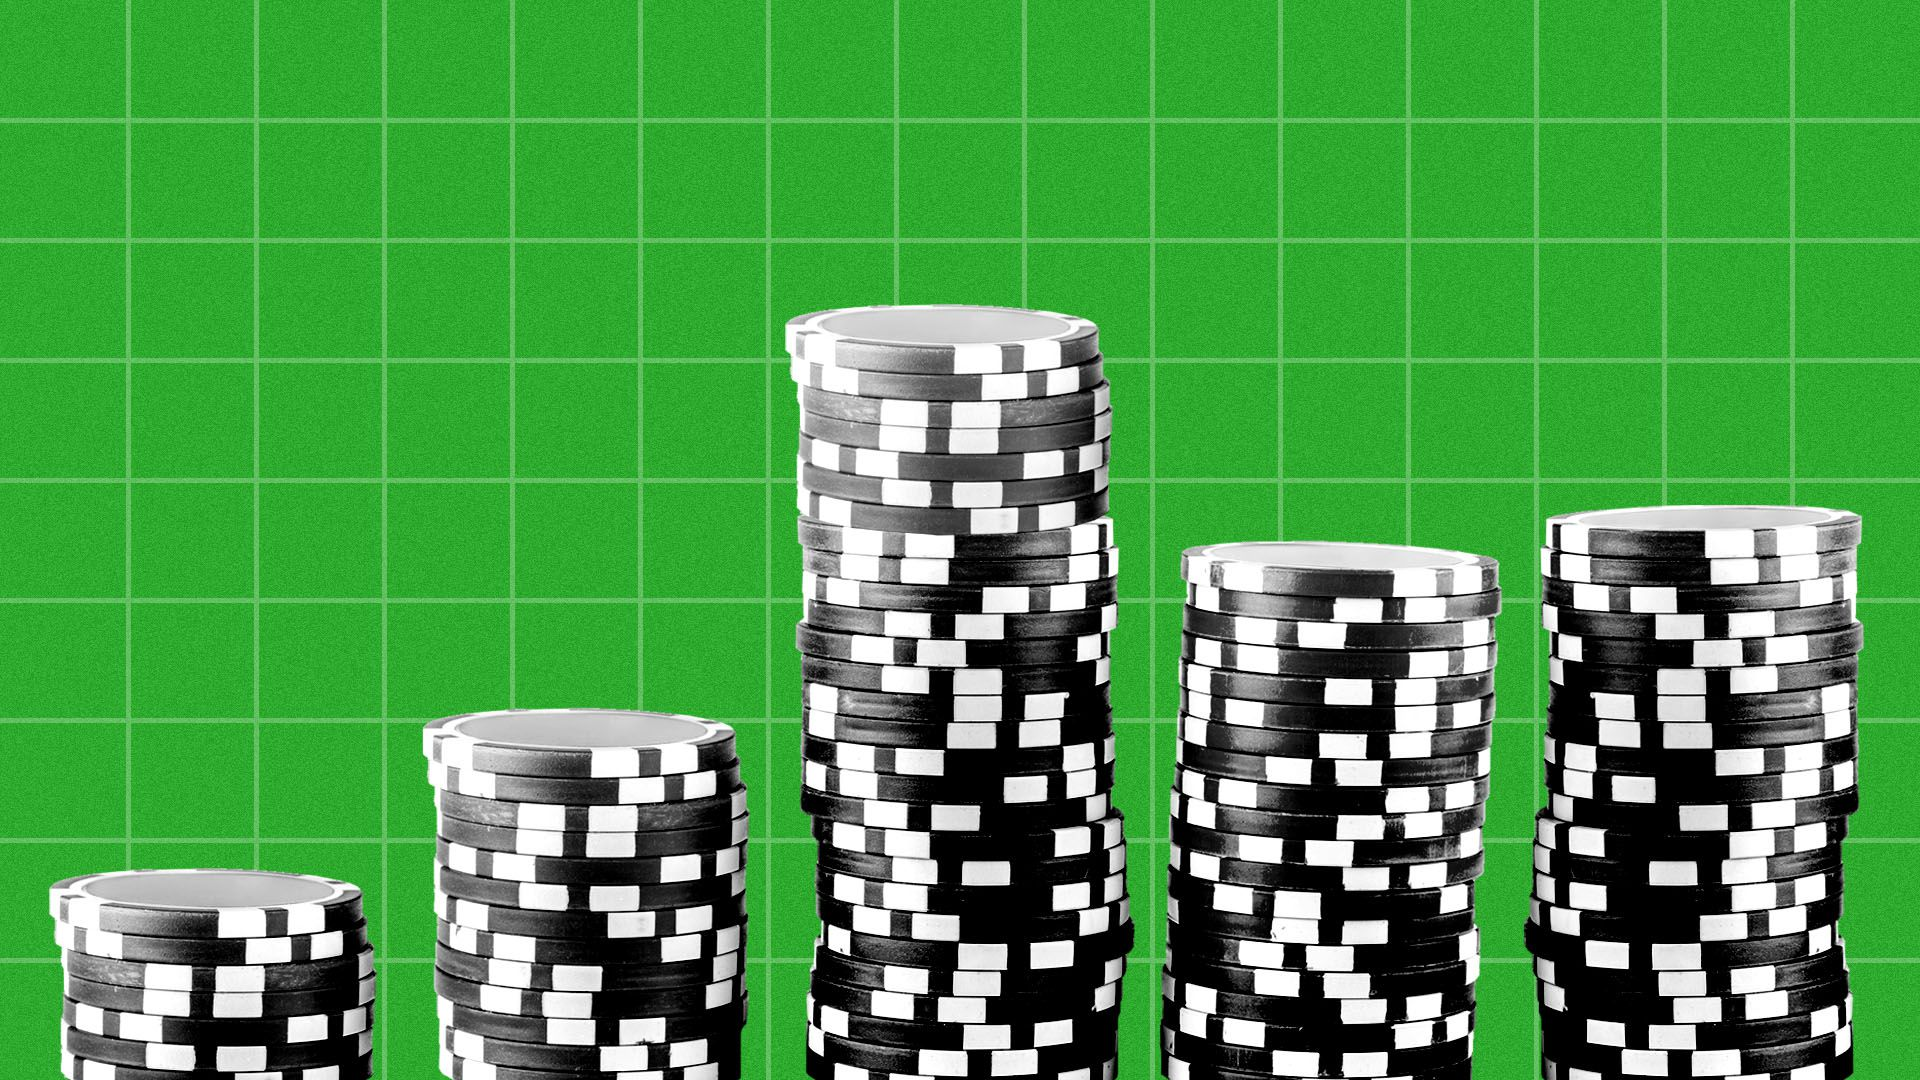 Illustration of piles of gambling chips arranged as a bar graph